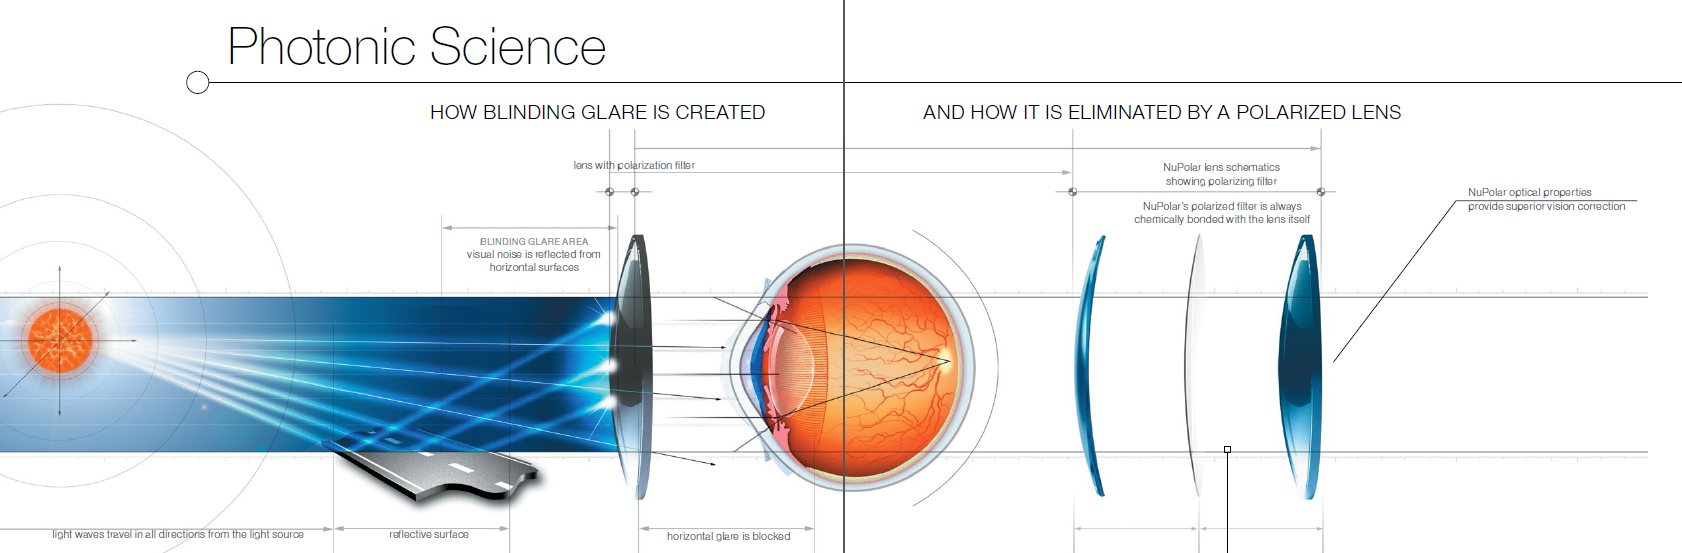 How NuPolar Lenses Protect From Blinding Glare